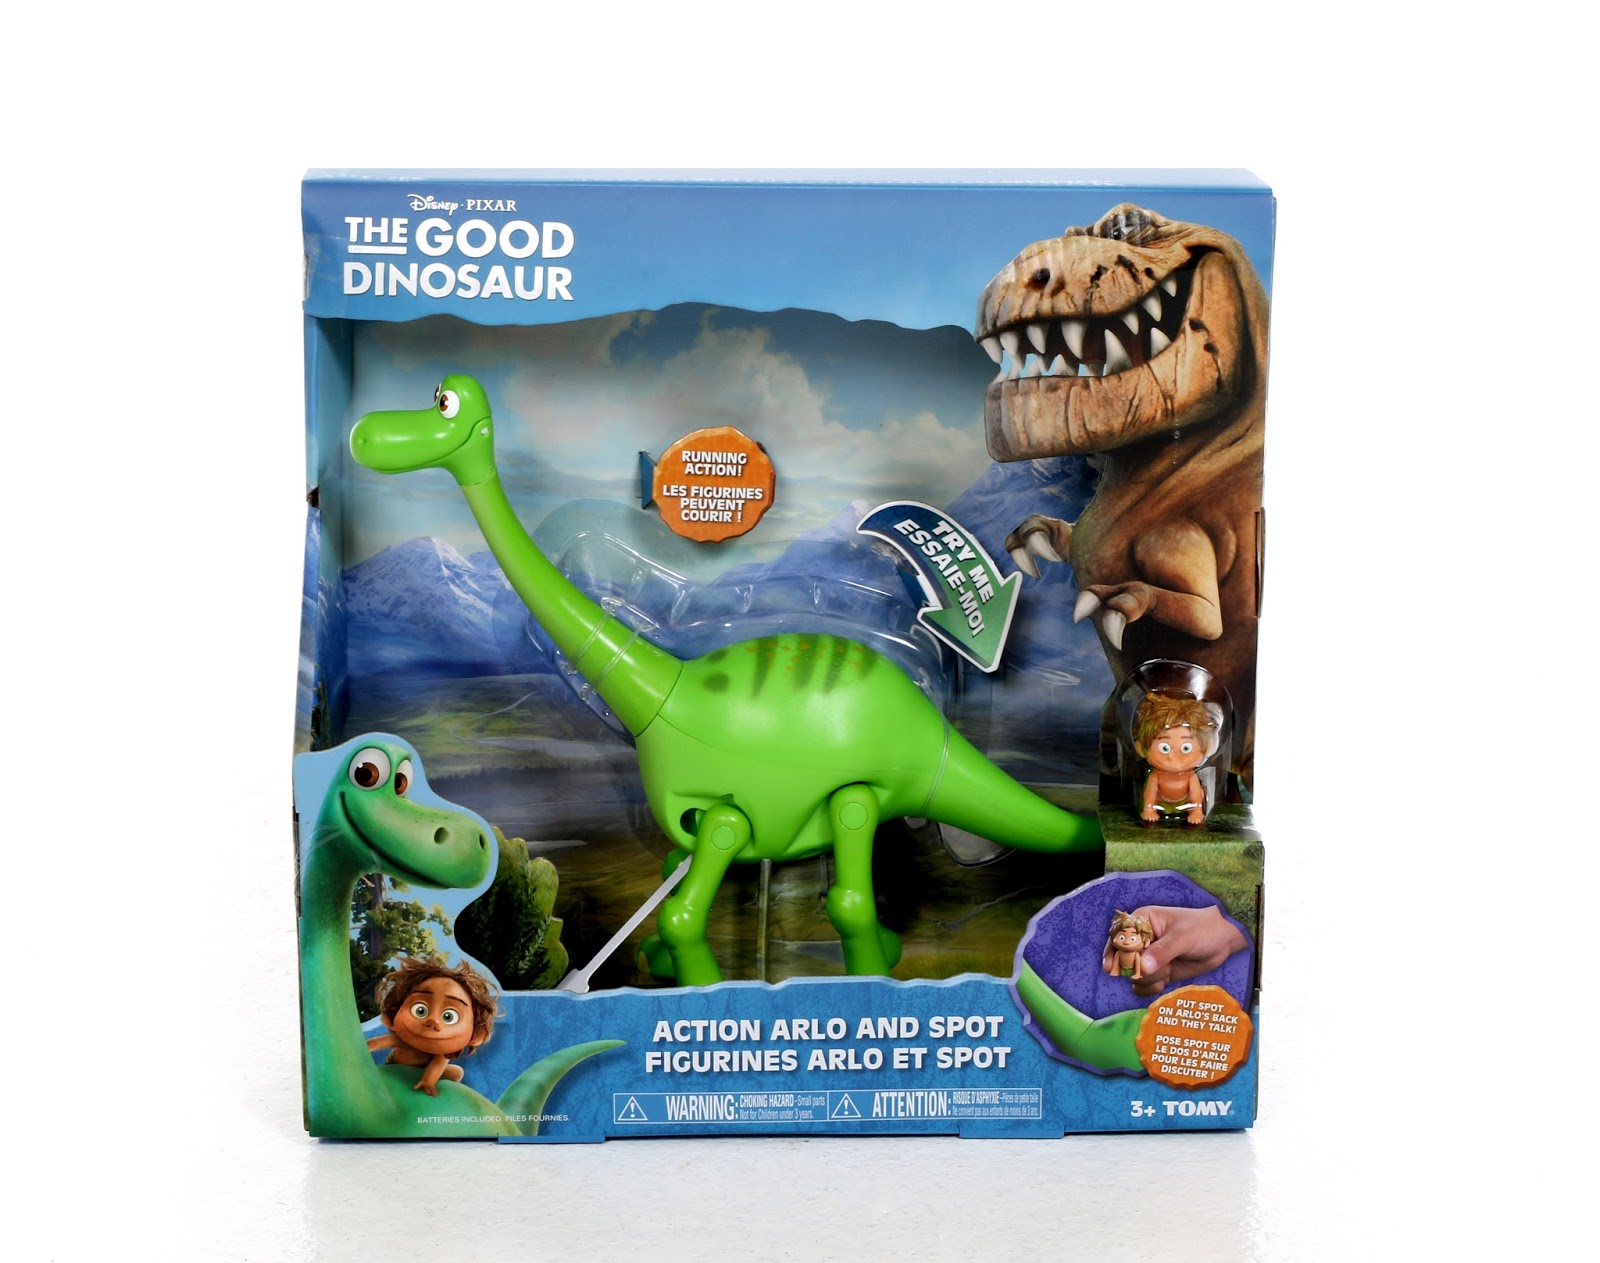 dan the pixar fan the good dinosaur action arlo and spot figure set. Black Bedroom Furniture Sets. Home Design Ideas